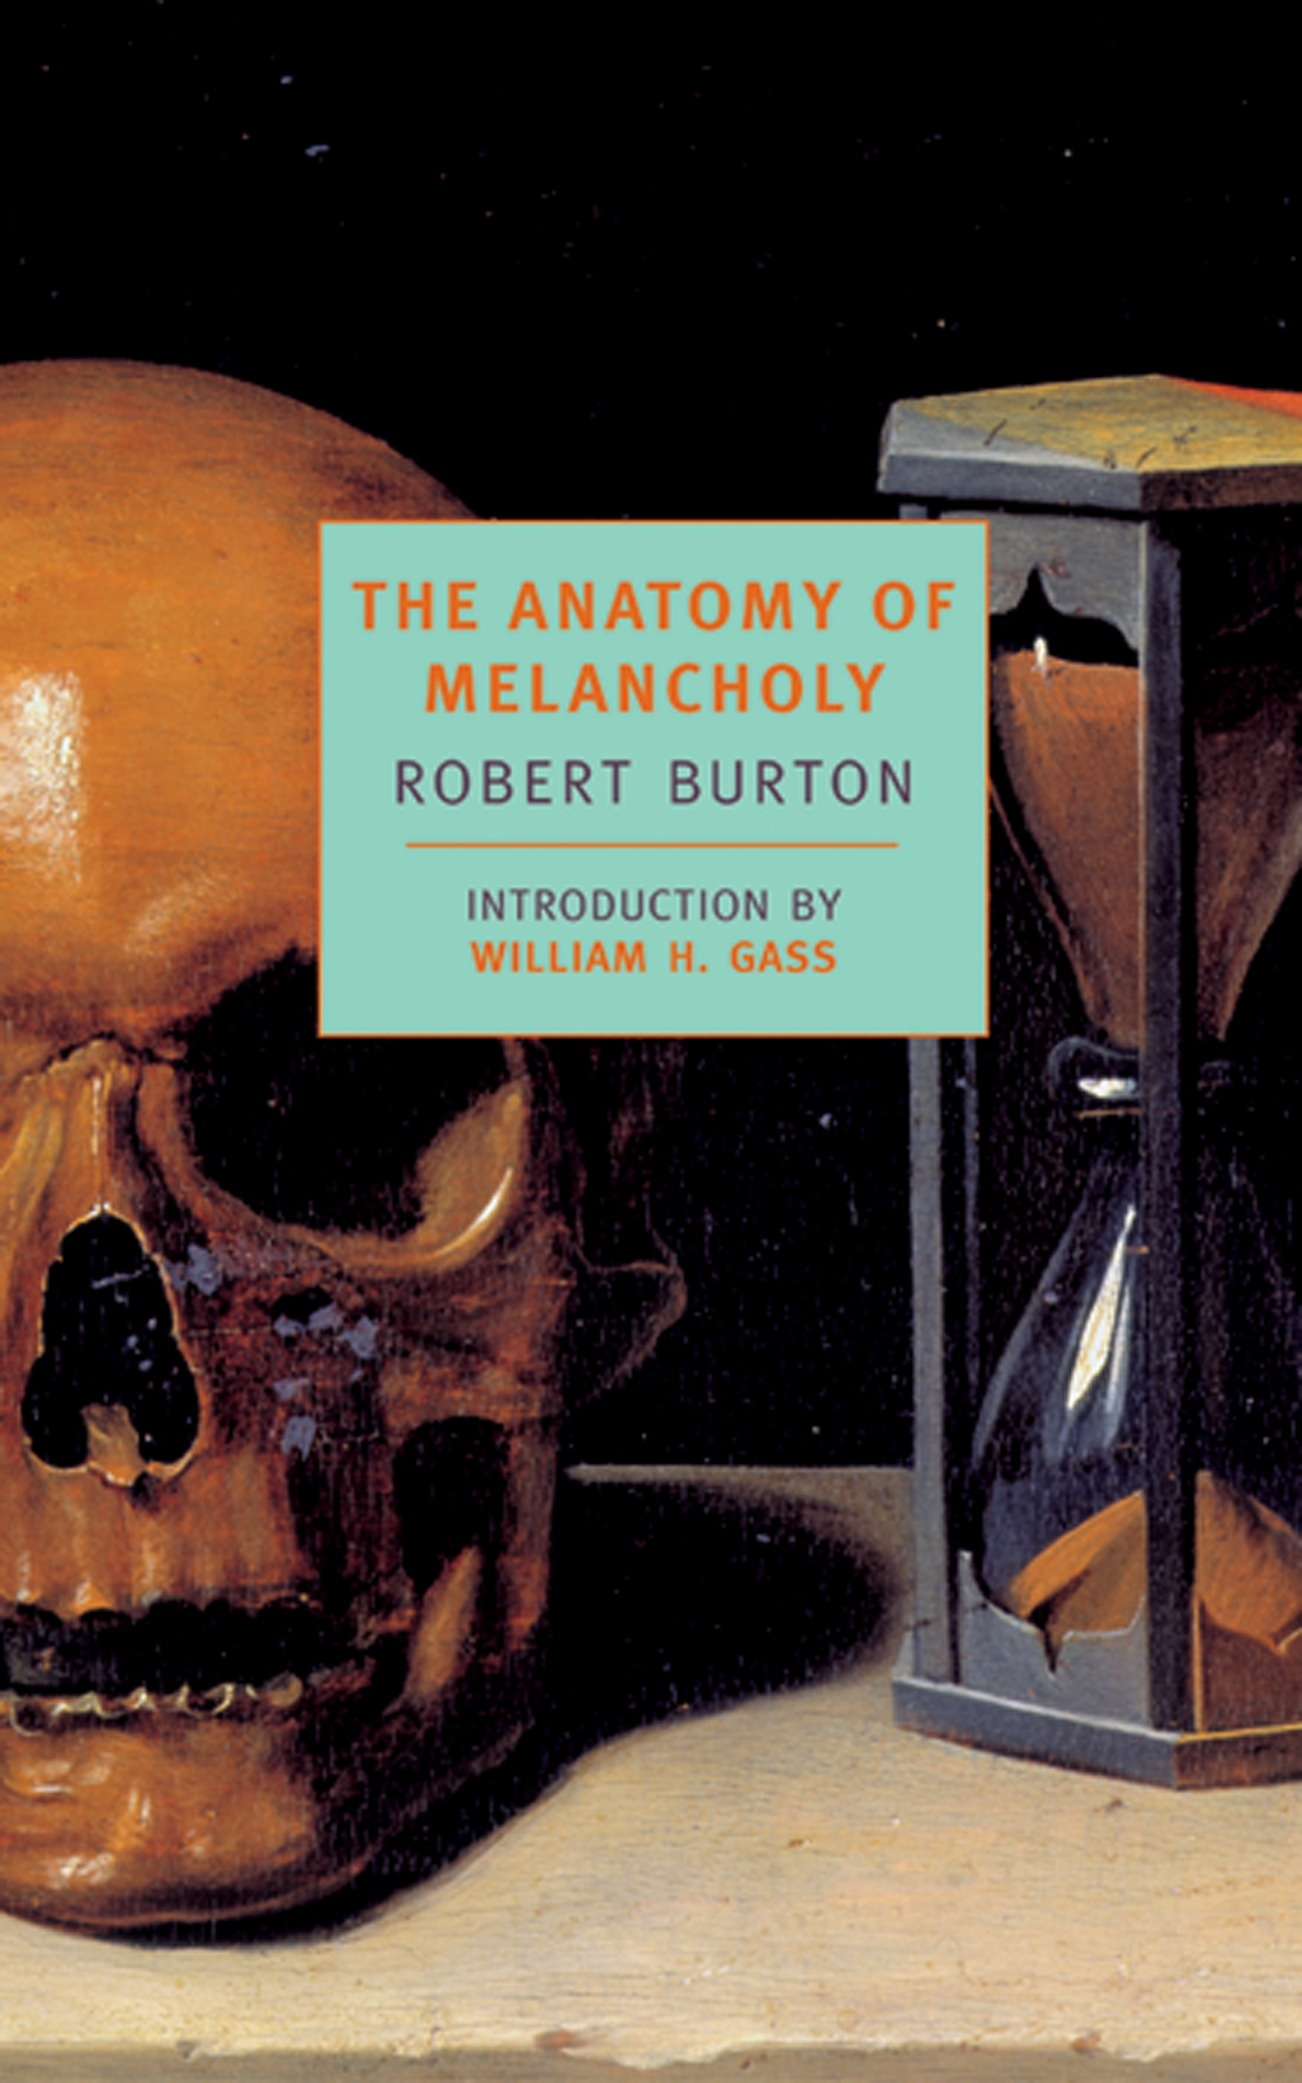 The Anatomy Of Melancholy by Robert Burton, ISBN: 9780940322660